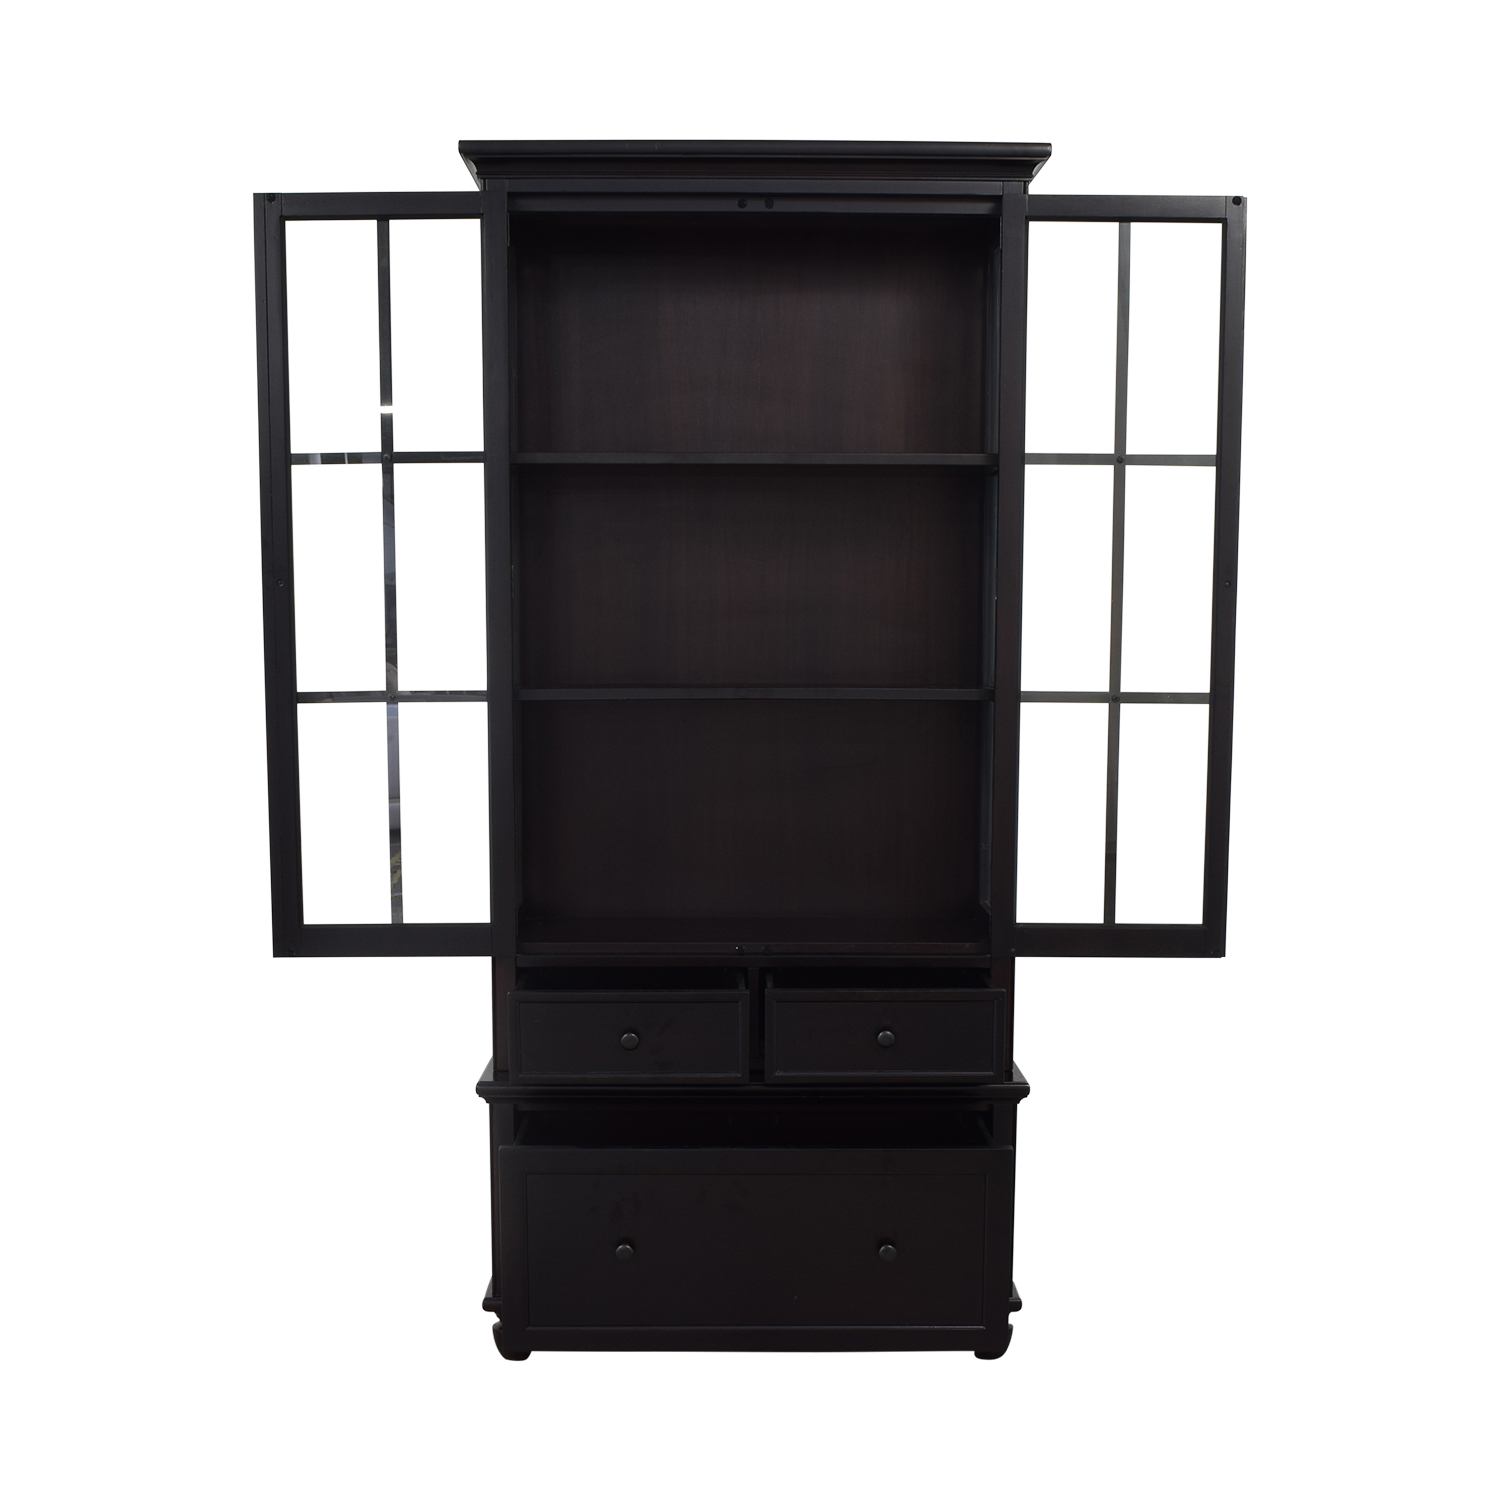 65% Off - Crate & Barrel Crate & Barrel Storage Bookcase With Shelves /  Storage